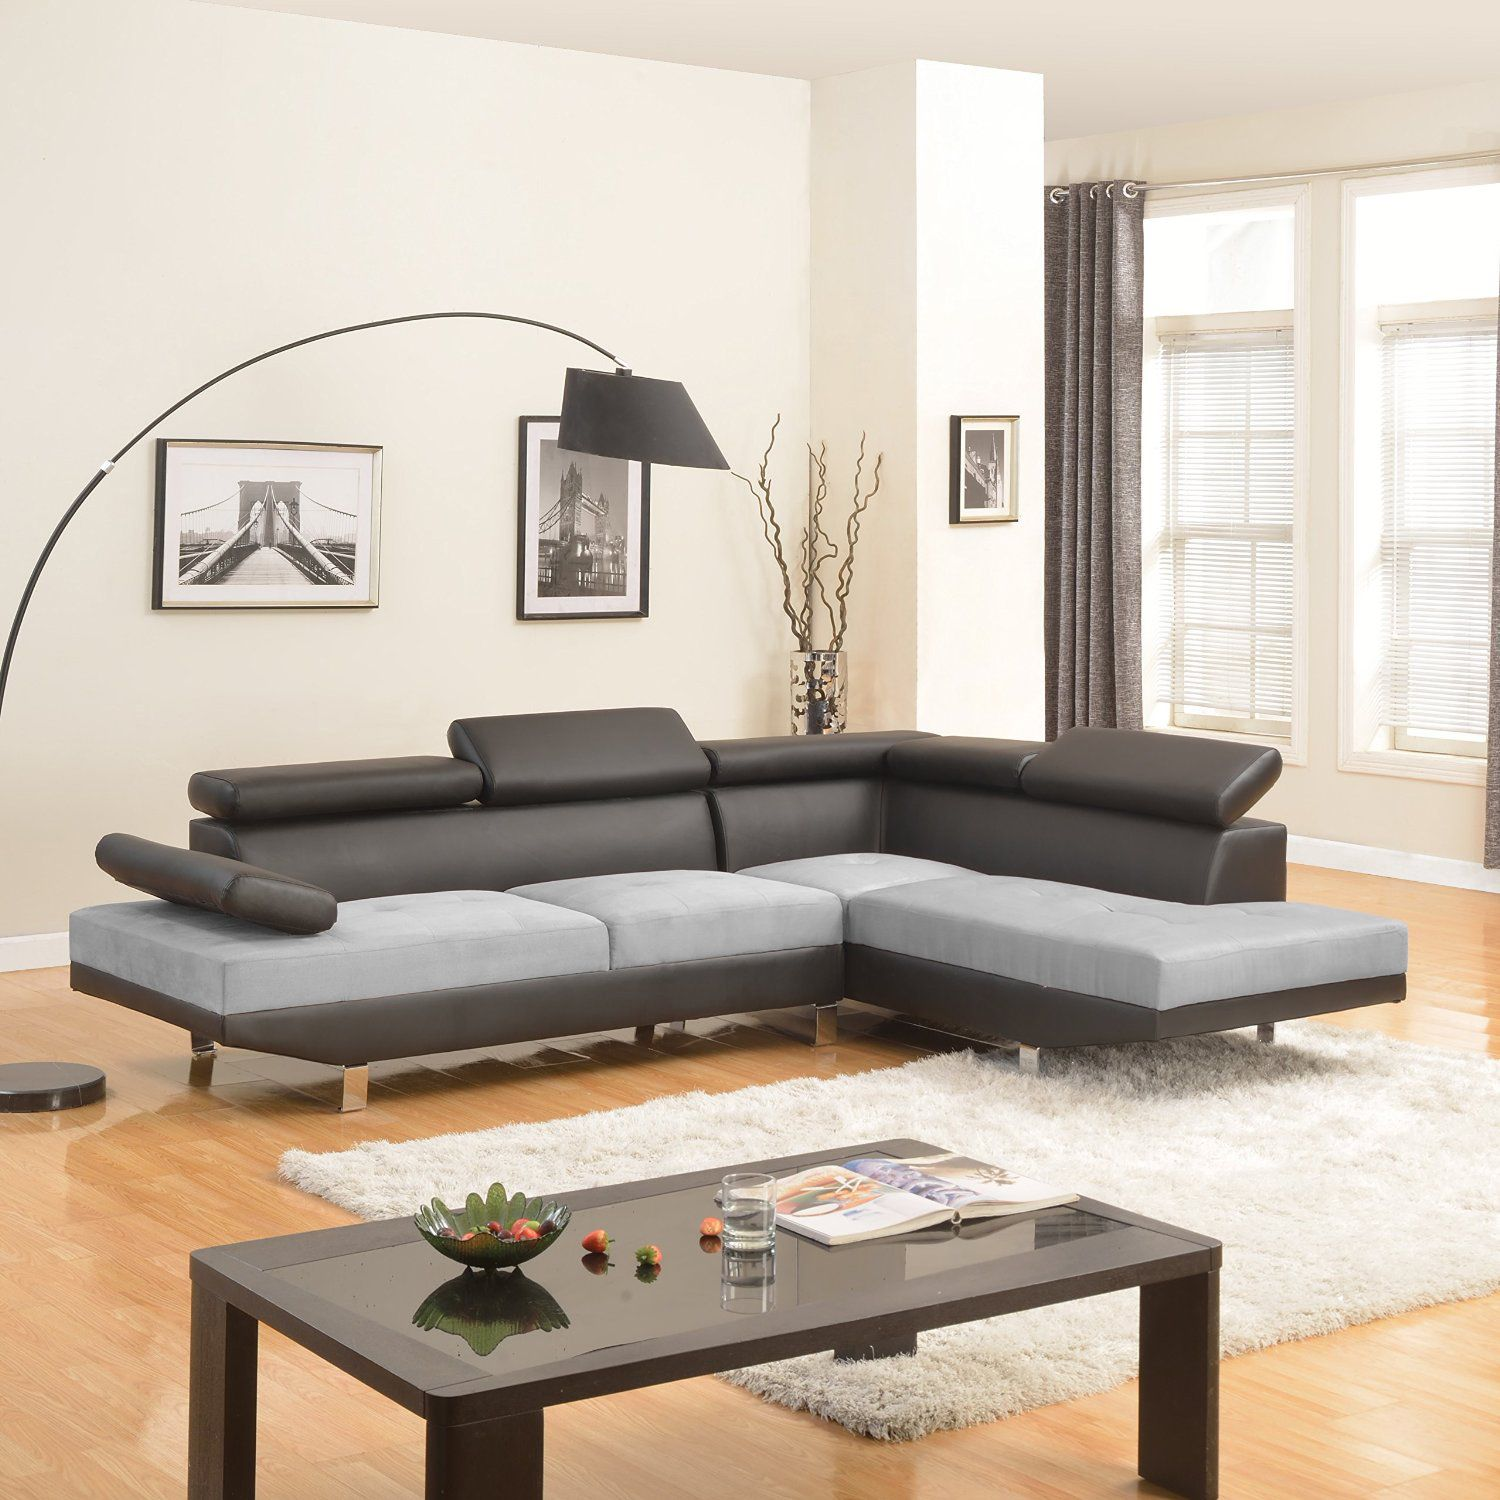 Overstock Com Online Shopping Bedding Furniture Electronics Jewelry Clothing More Leather Sectional Sofas Modern Sofa Designs Microfiber Sectional Sofa